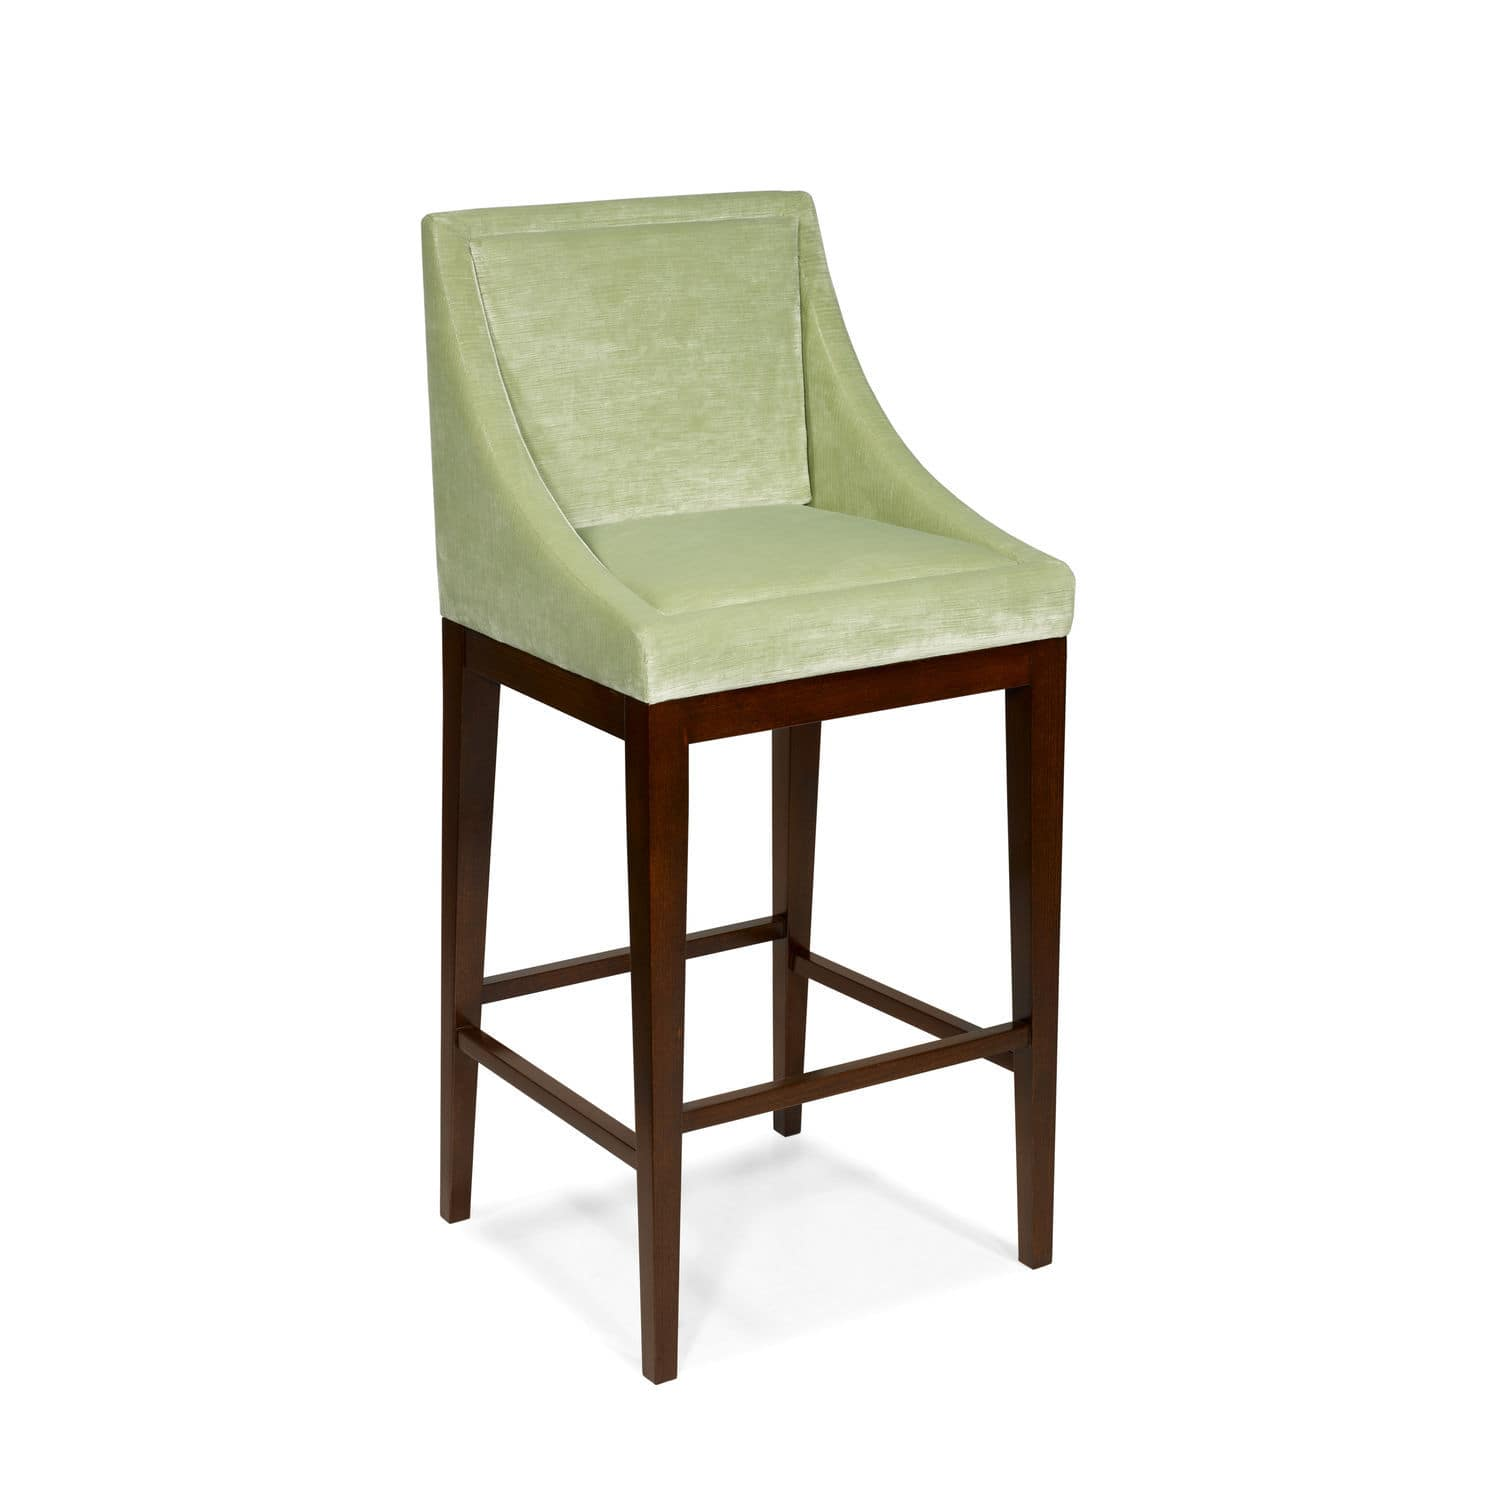 Admirable Traditional Bar Chair Upholstered With Footrest Fabric Squirreltailoven Fun Painted Chair Ideas Images Squirreltailovenorg